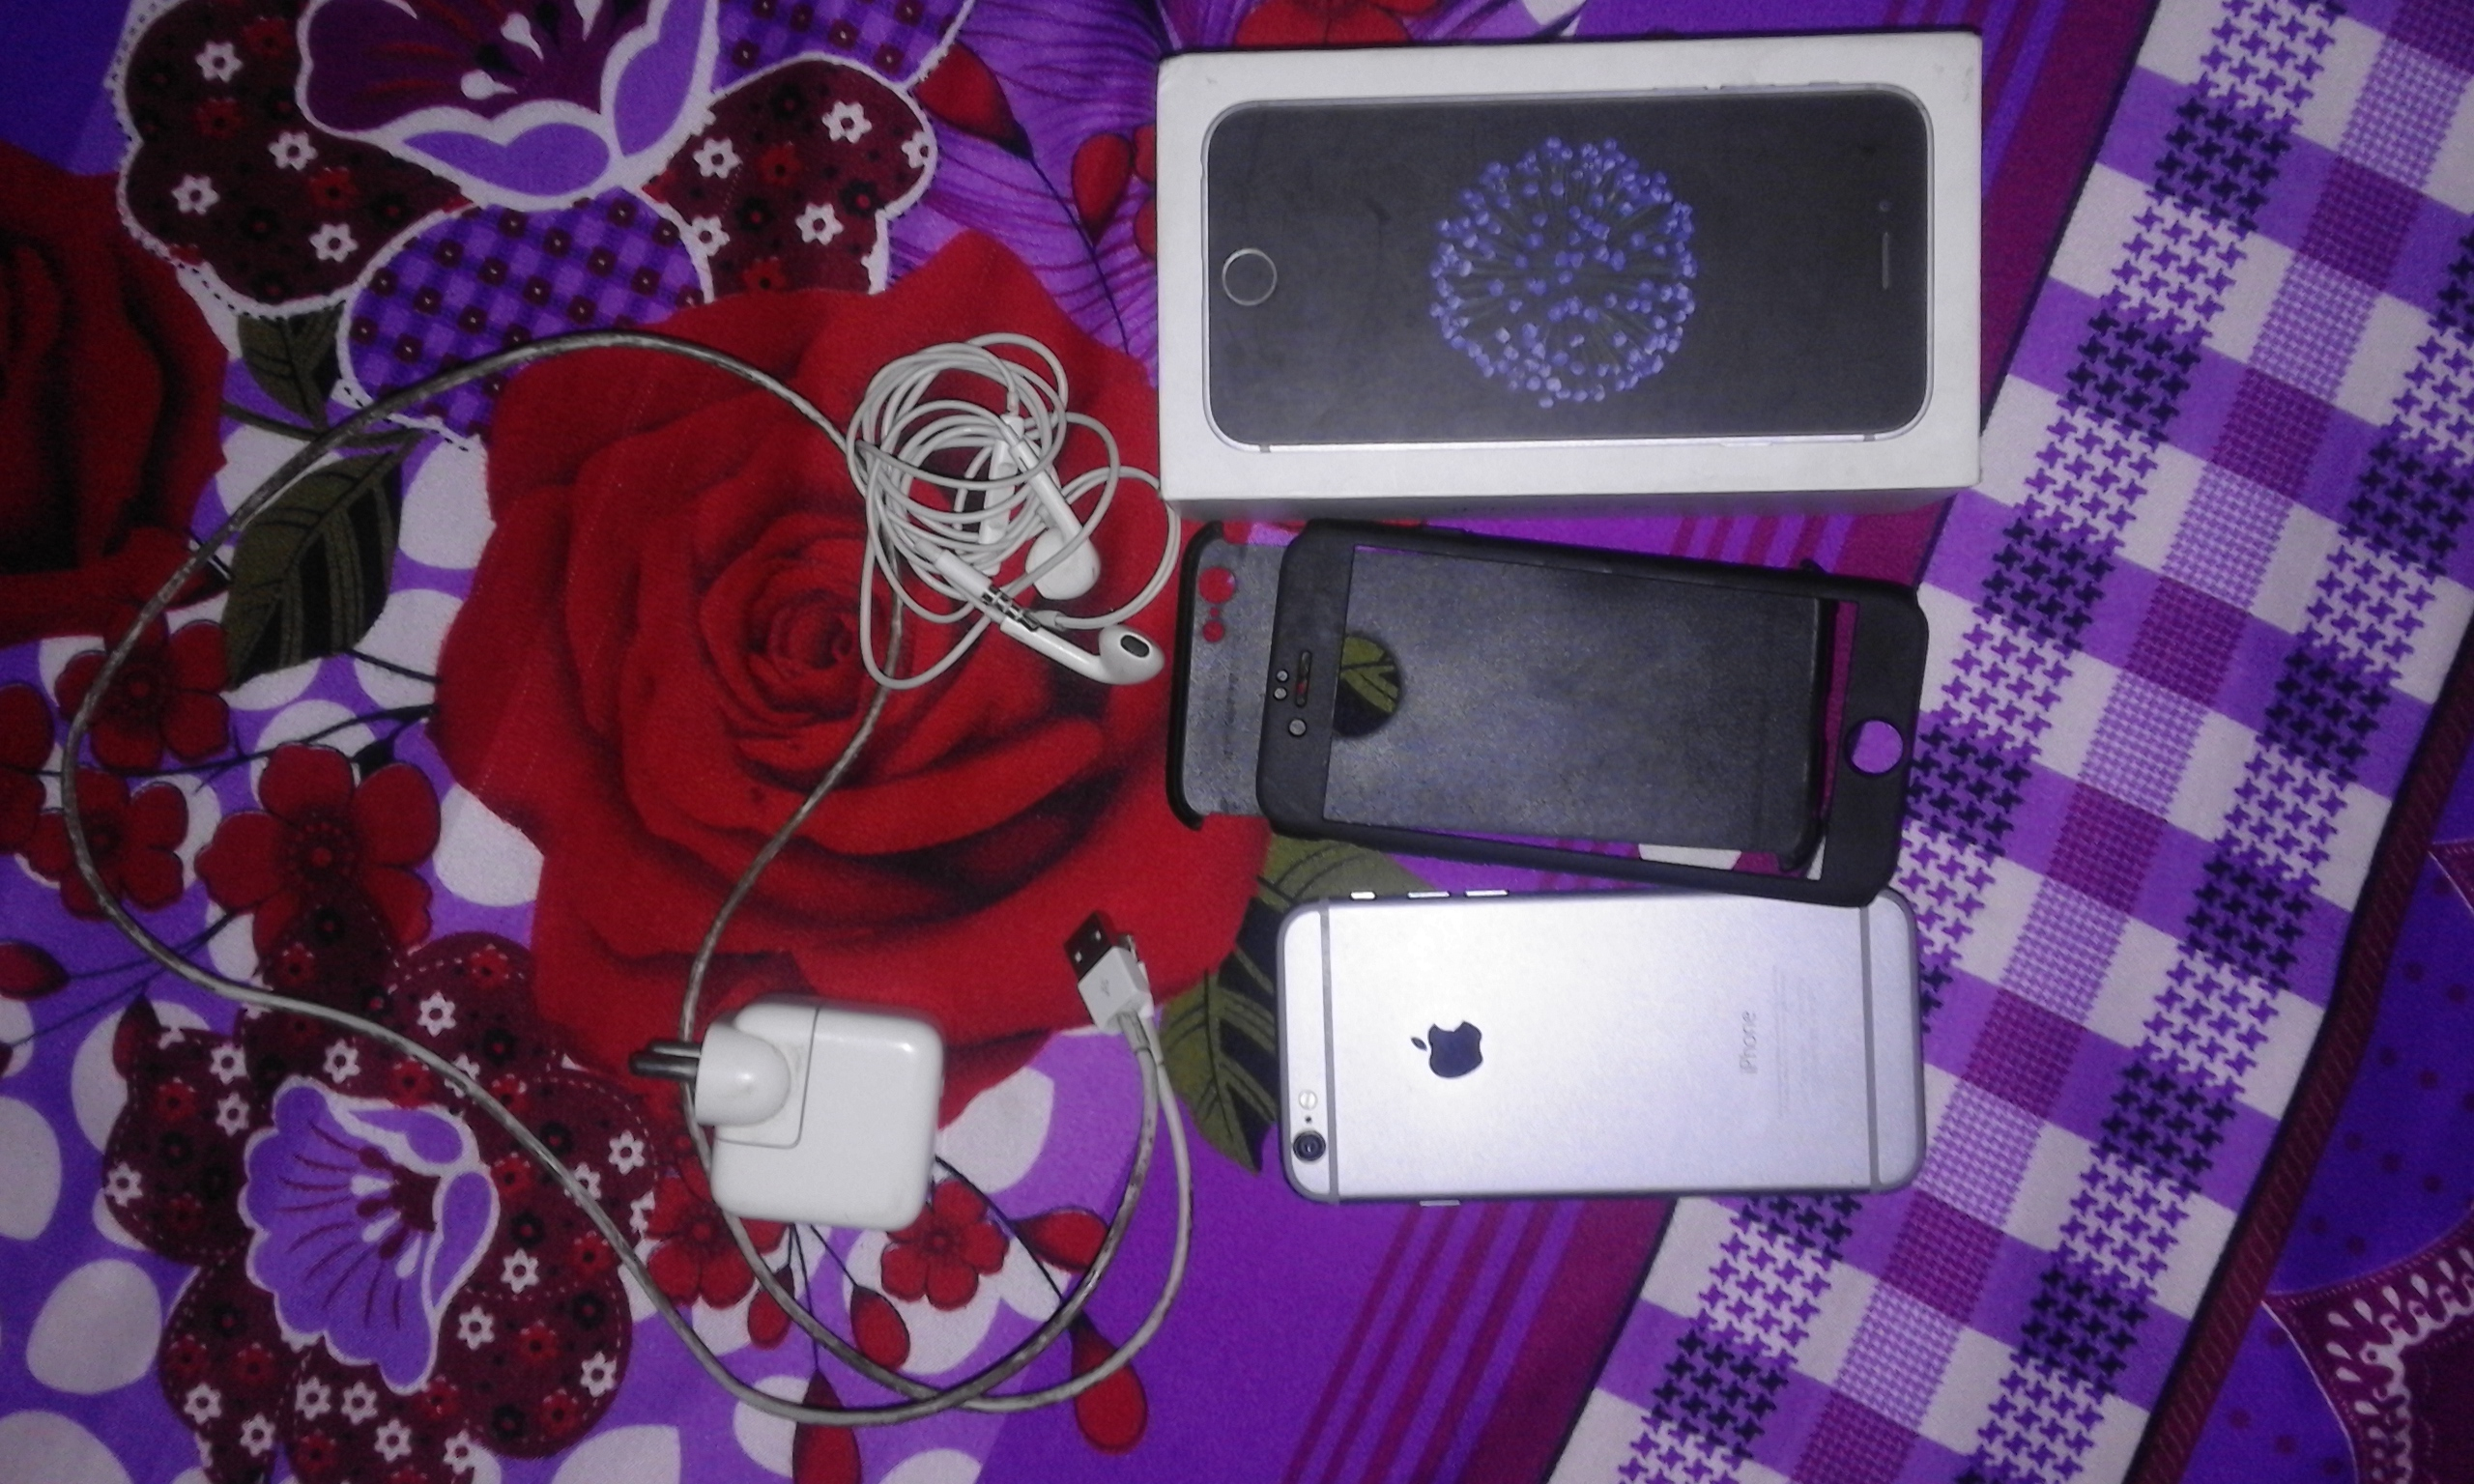 Iphone 6 16gb with original box and accessories - photo 1